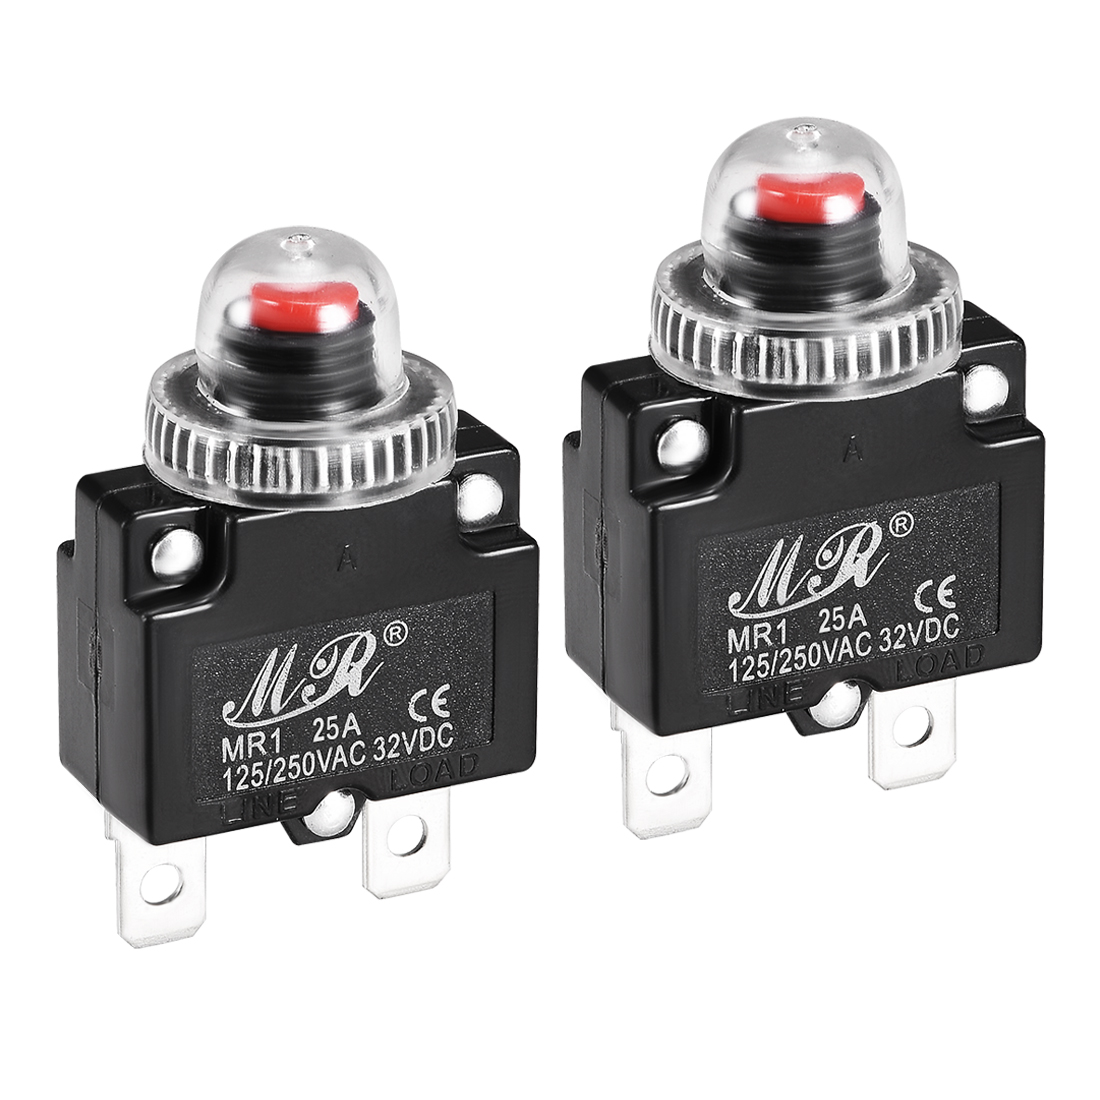 2 Pcs 25A 125/250V Push Button Reset Overload Protector Thermal Circuit Breaker